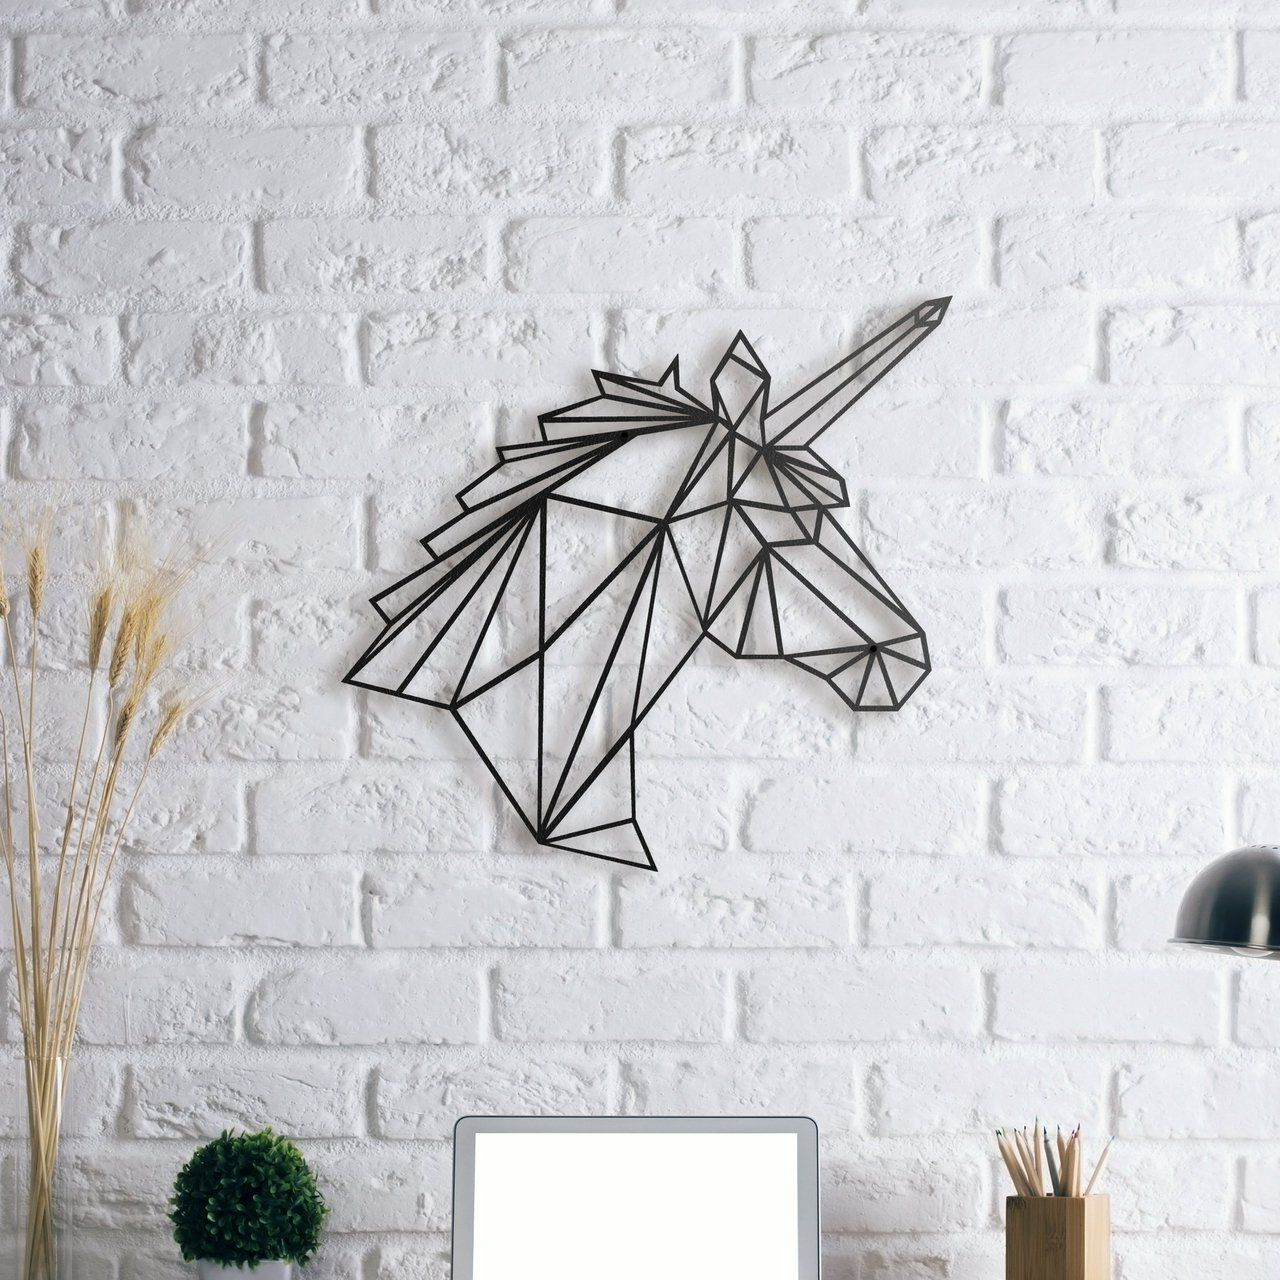 Well Liked Metal Wall Decor By Ebern Designs Intended For Unicorn Metal Wall Art (View 18 of 20)